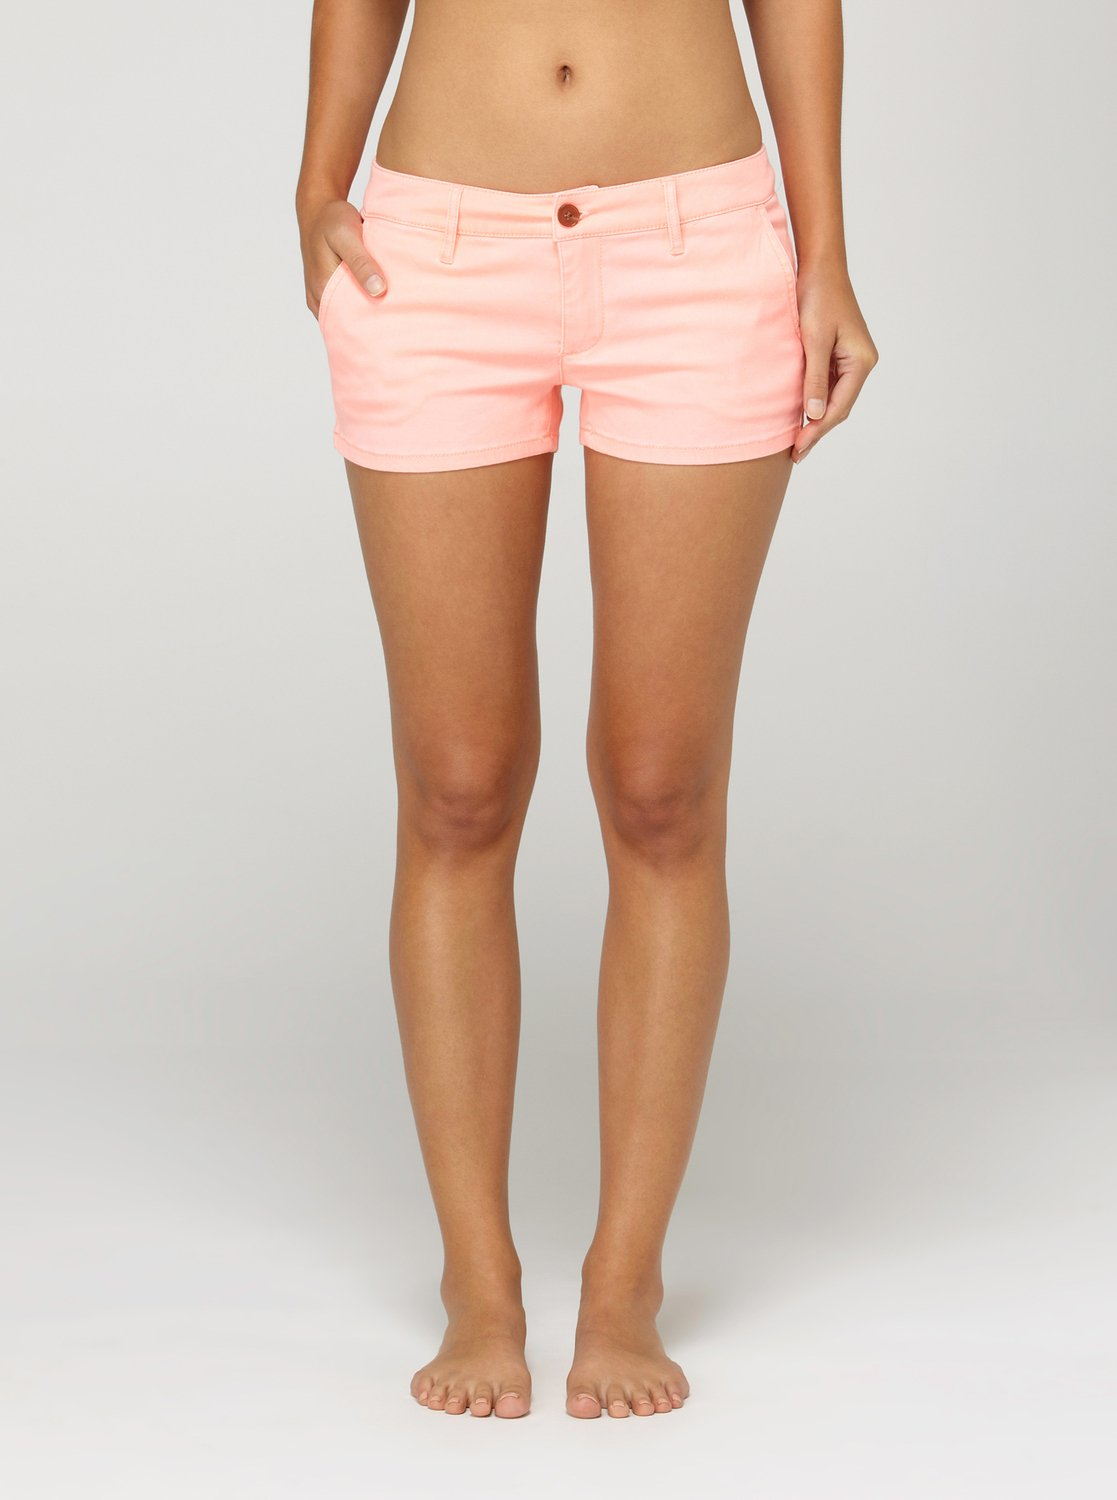 cafc9c920e406 0 To The Top Shorts ARJNS00003 Roxy